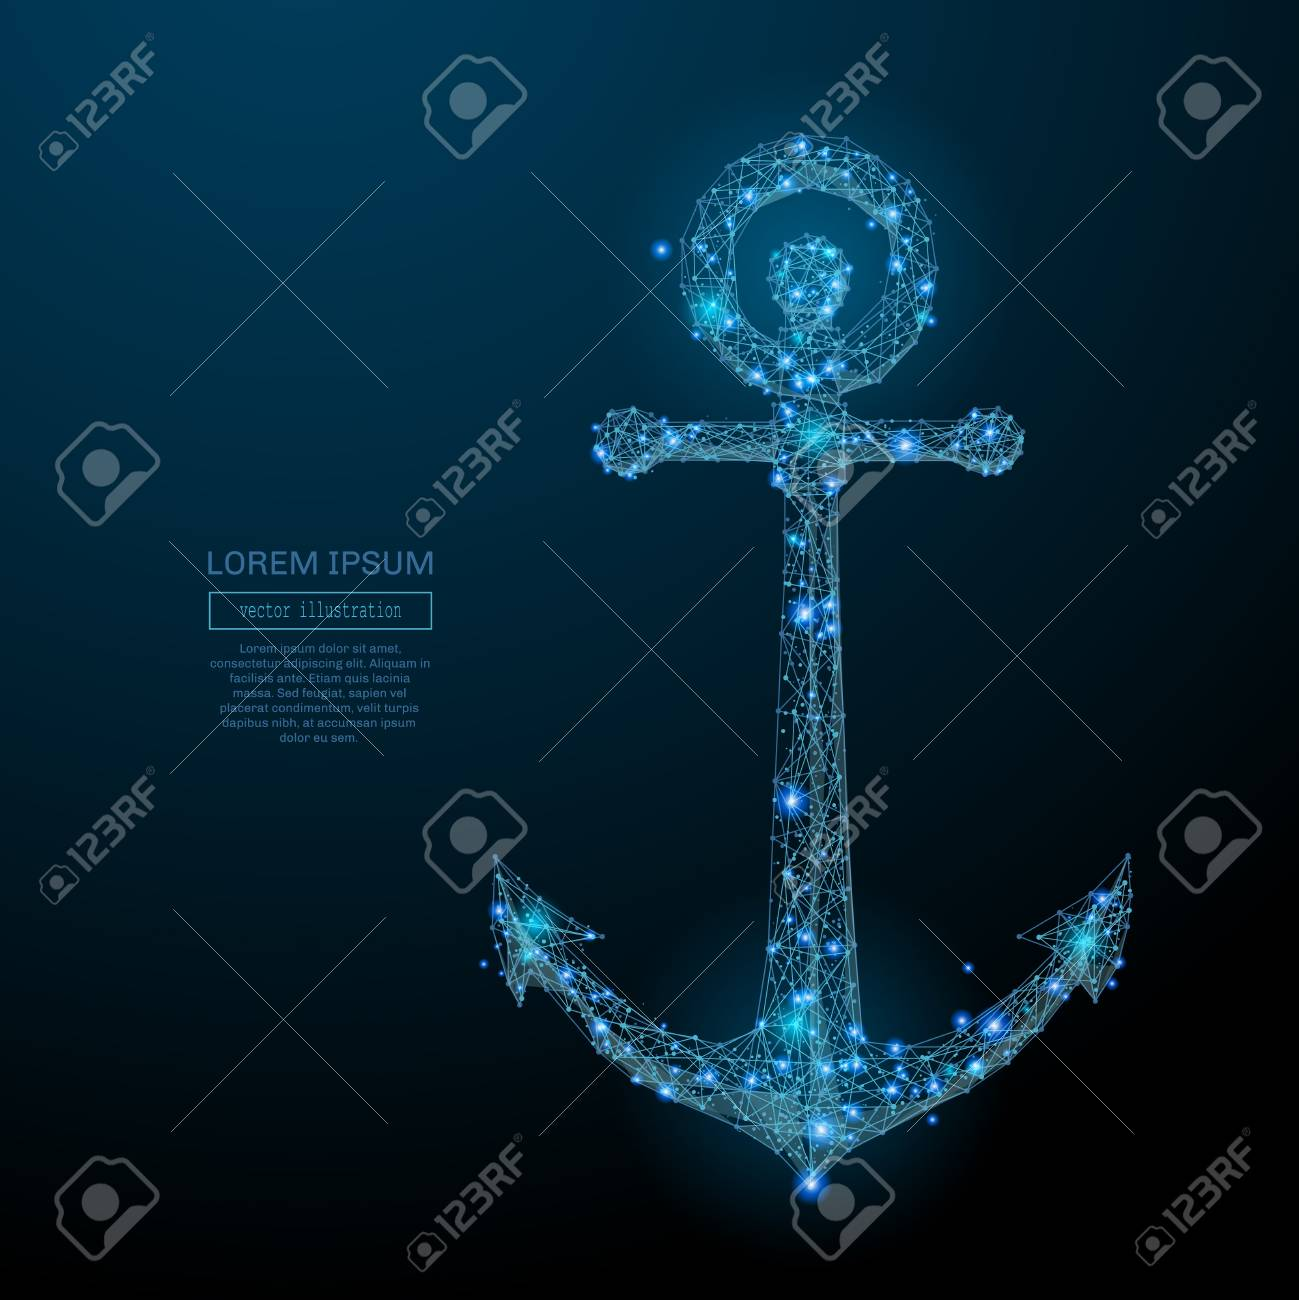 Abstract image of a anchor in the form of a starry sky or space, consisting of points, lines, and shapes in the form of planets, stars and the universe. Vector business wireframe concept. - 74643373